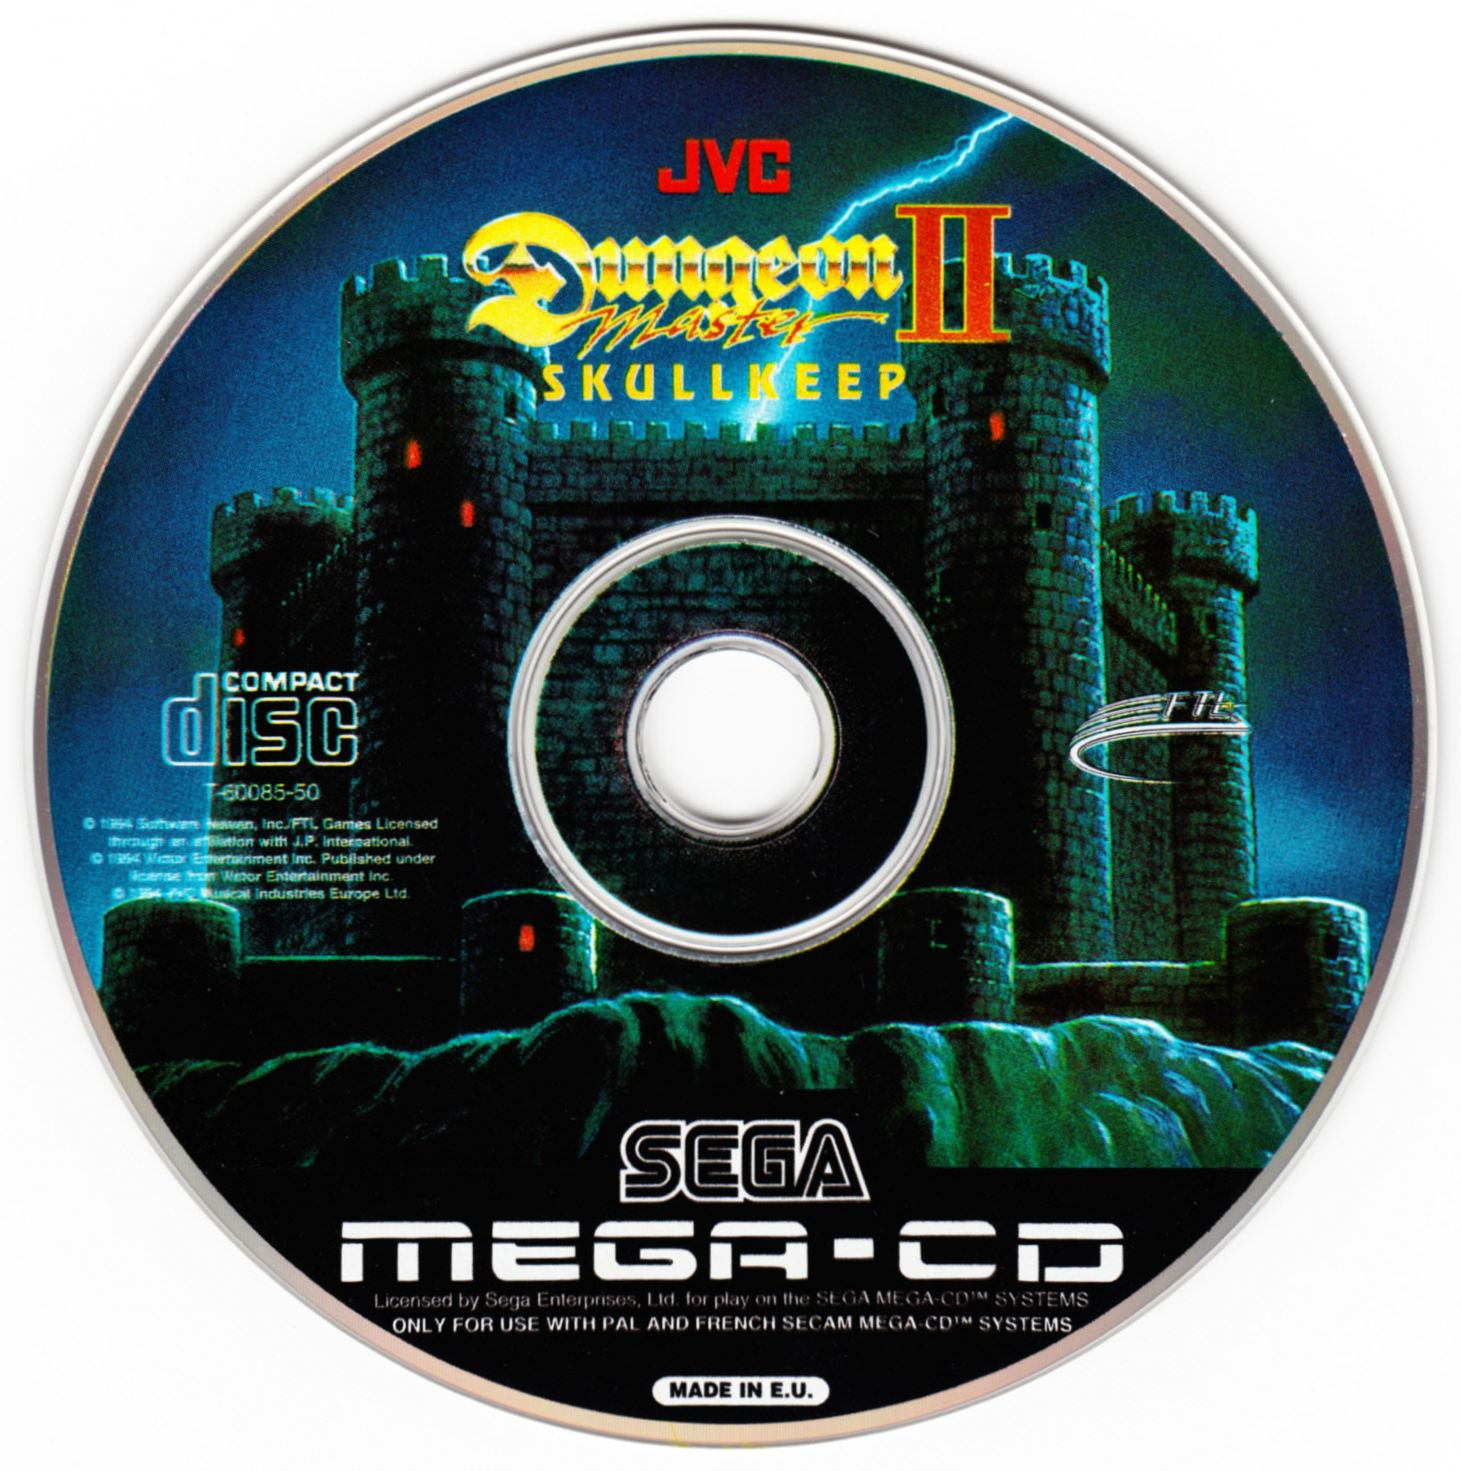 Game - Dungeon Master II - EU - Mega CD - Compact Disc - Front - Scan